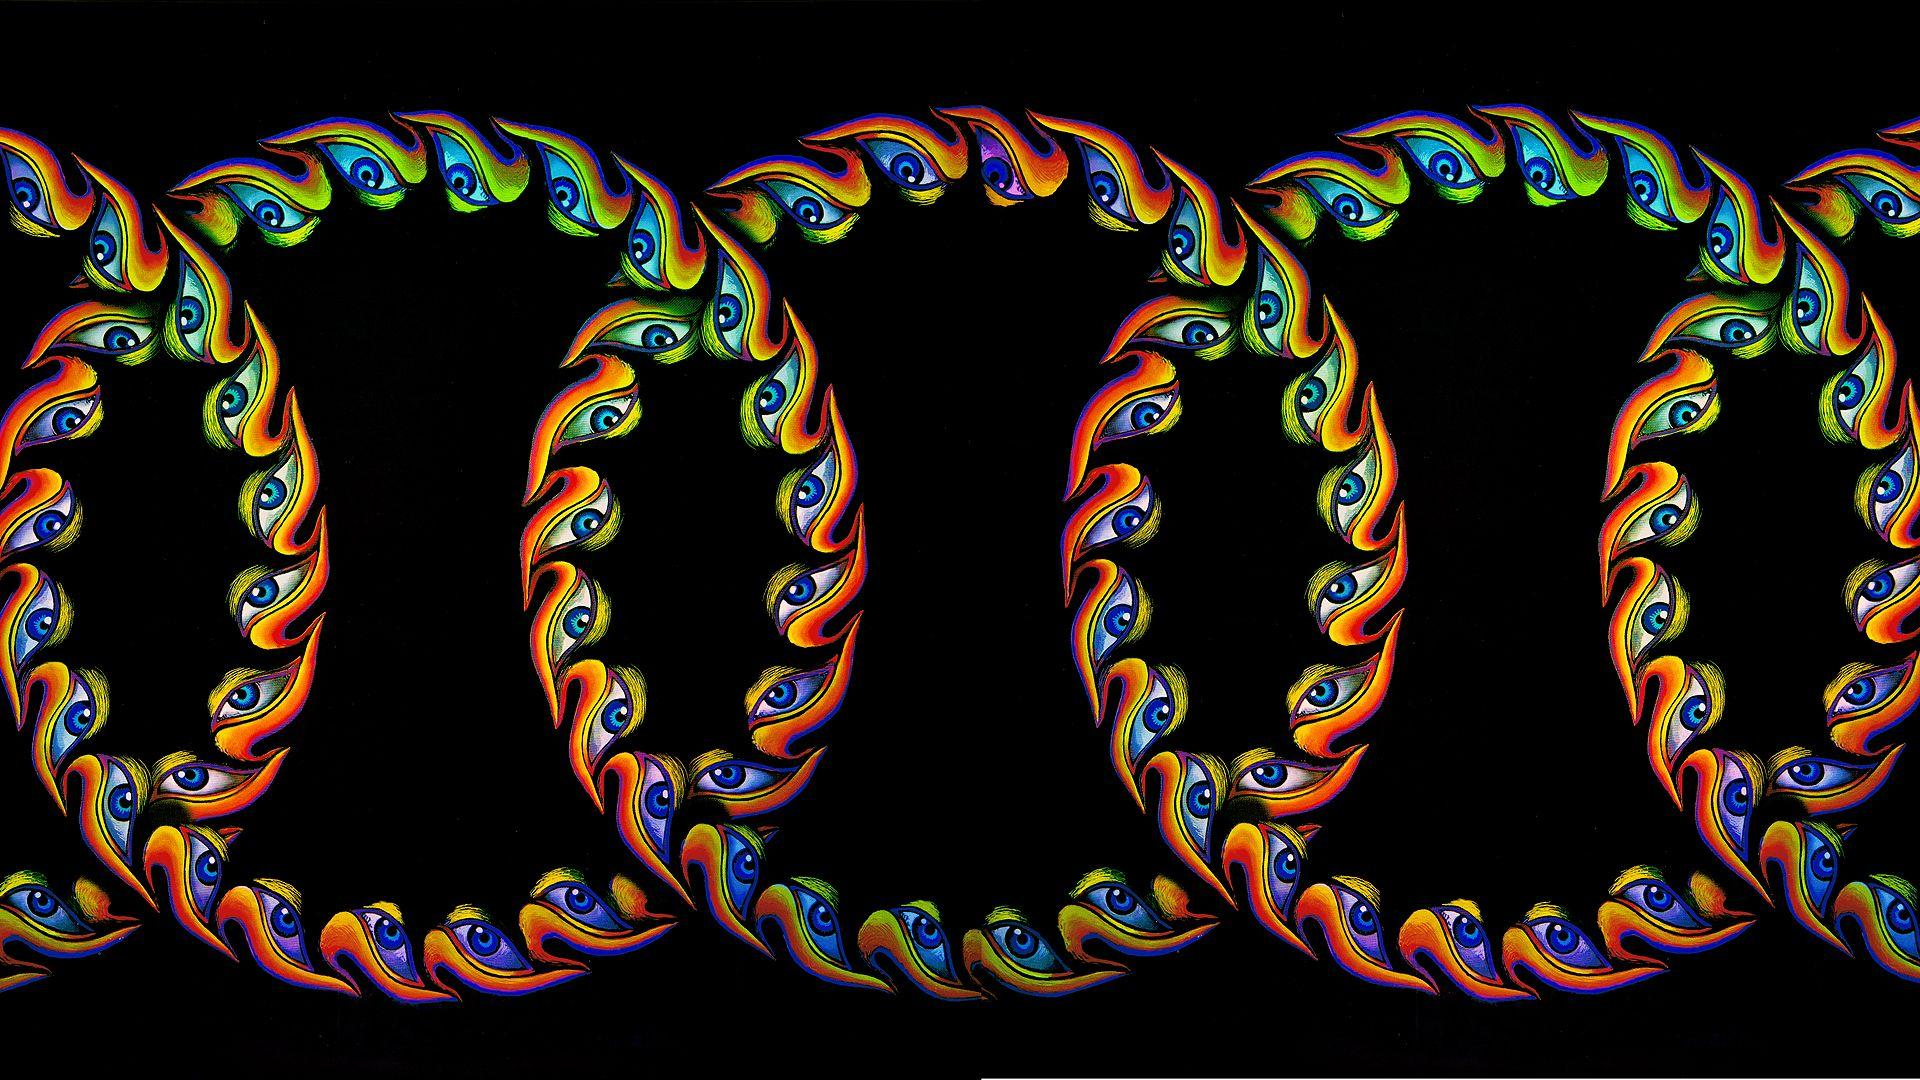 Tool Band Wallpapers Wallpaper Cave